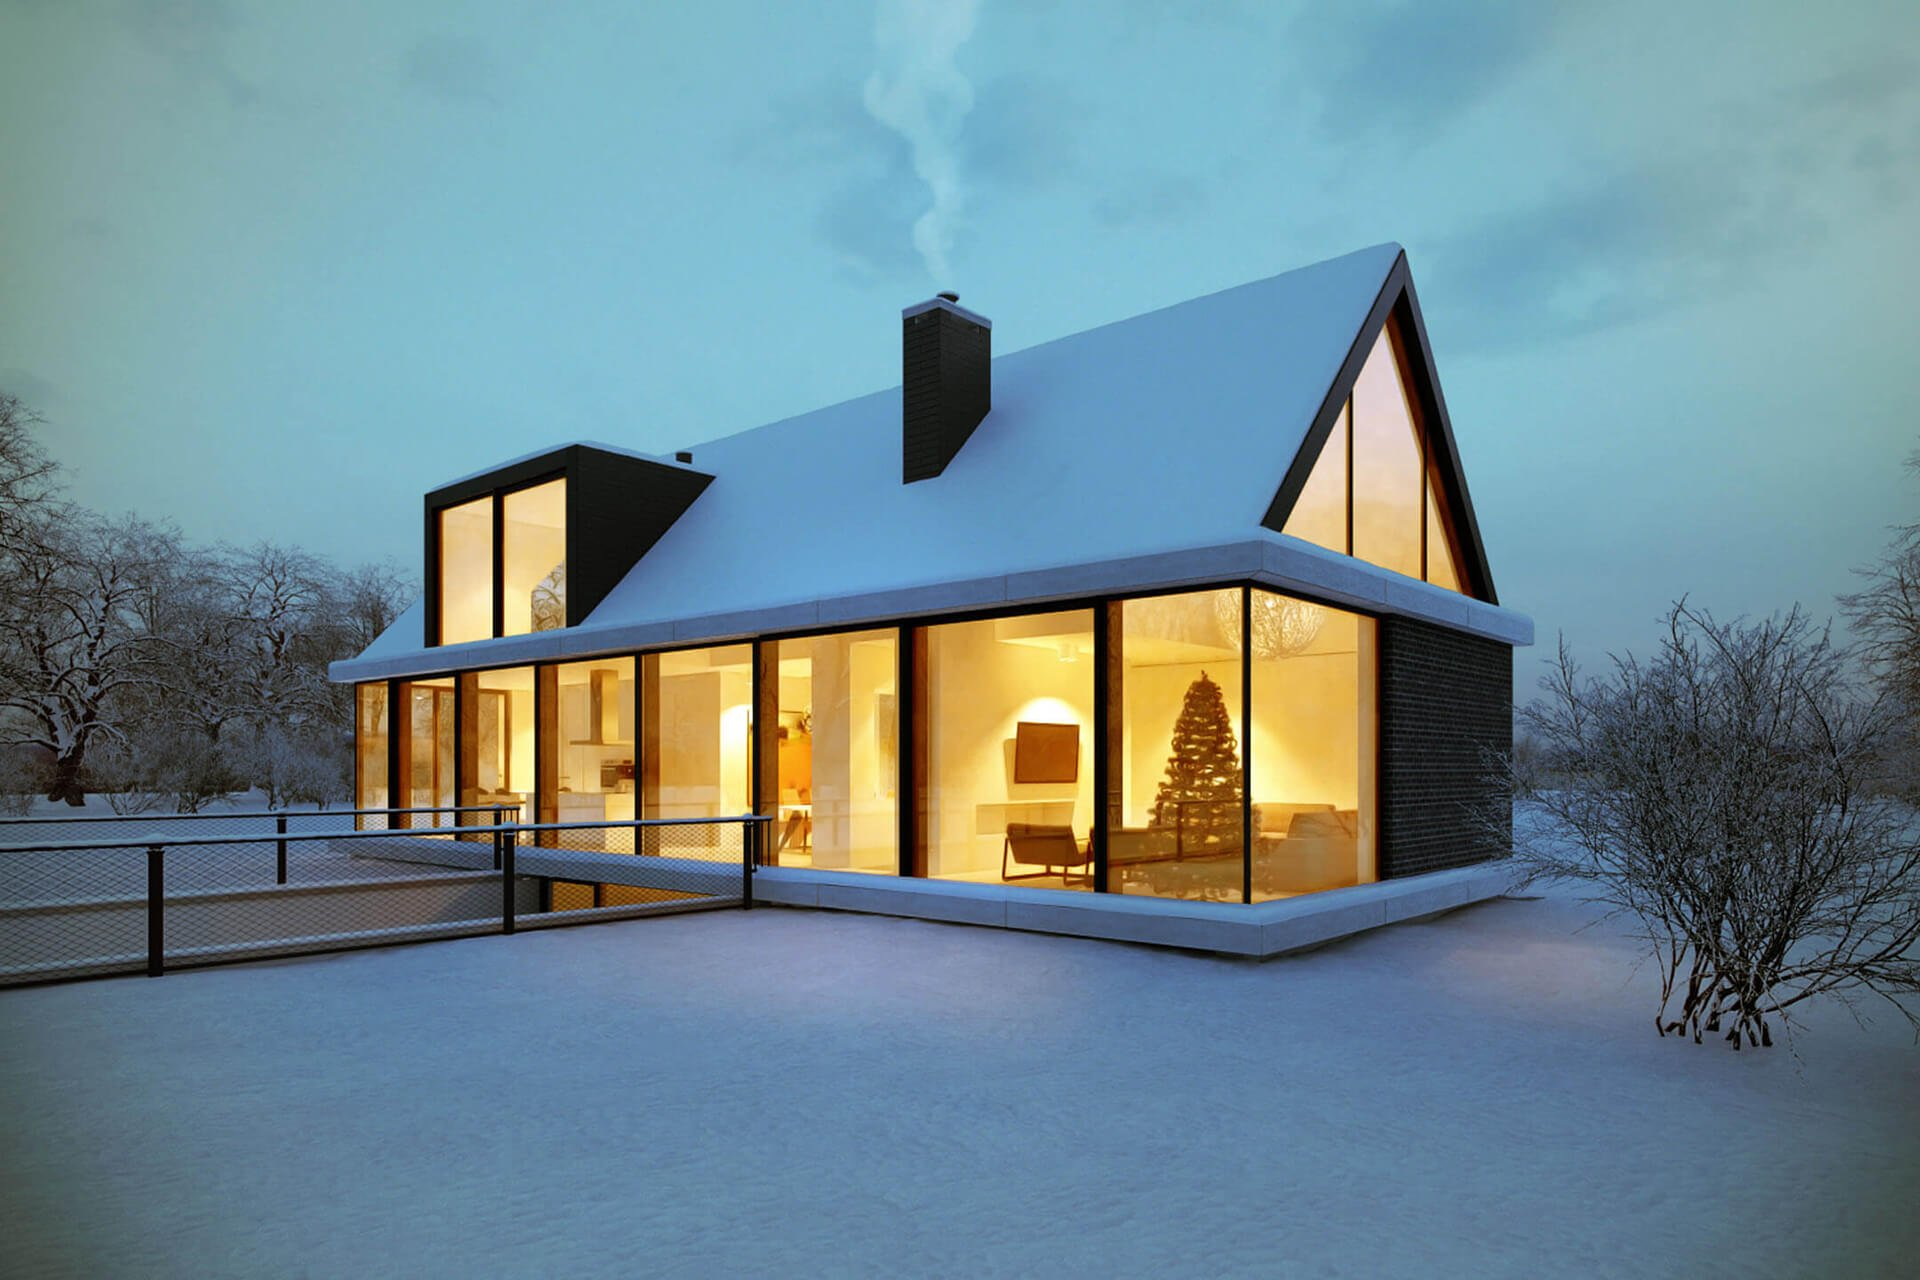 3D Exterior Rendering Of A House During Winter